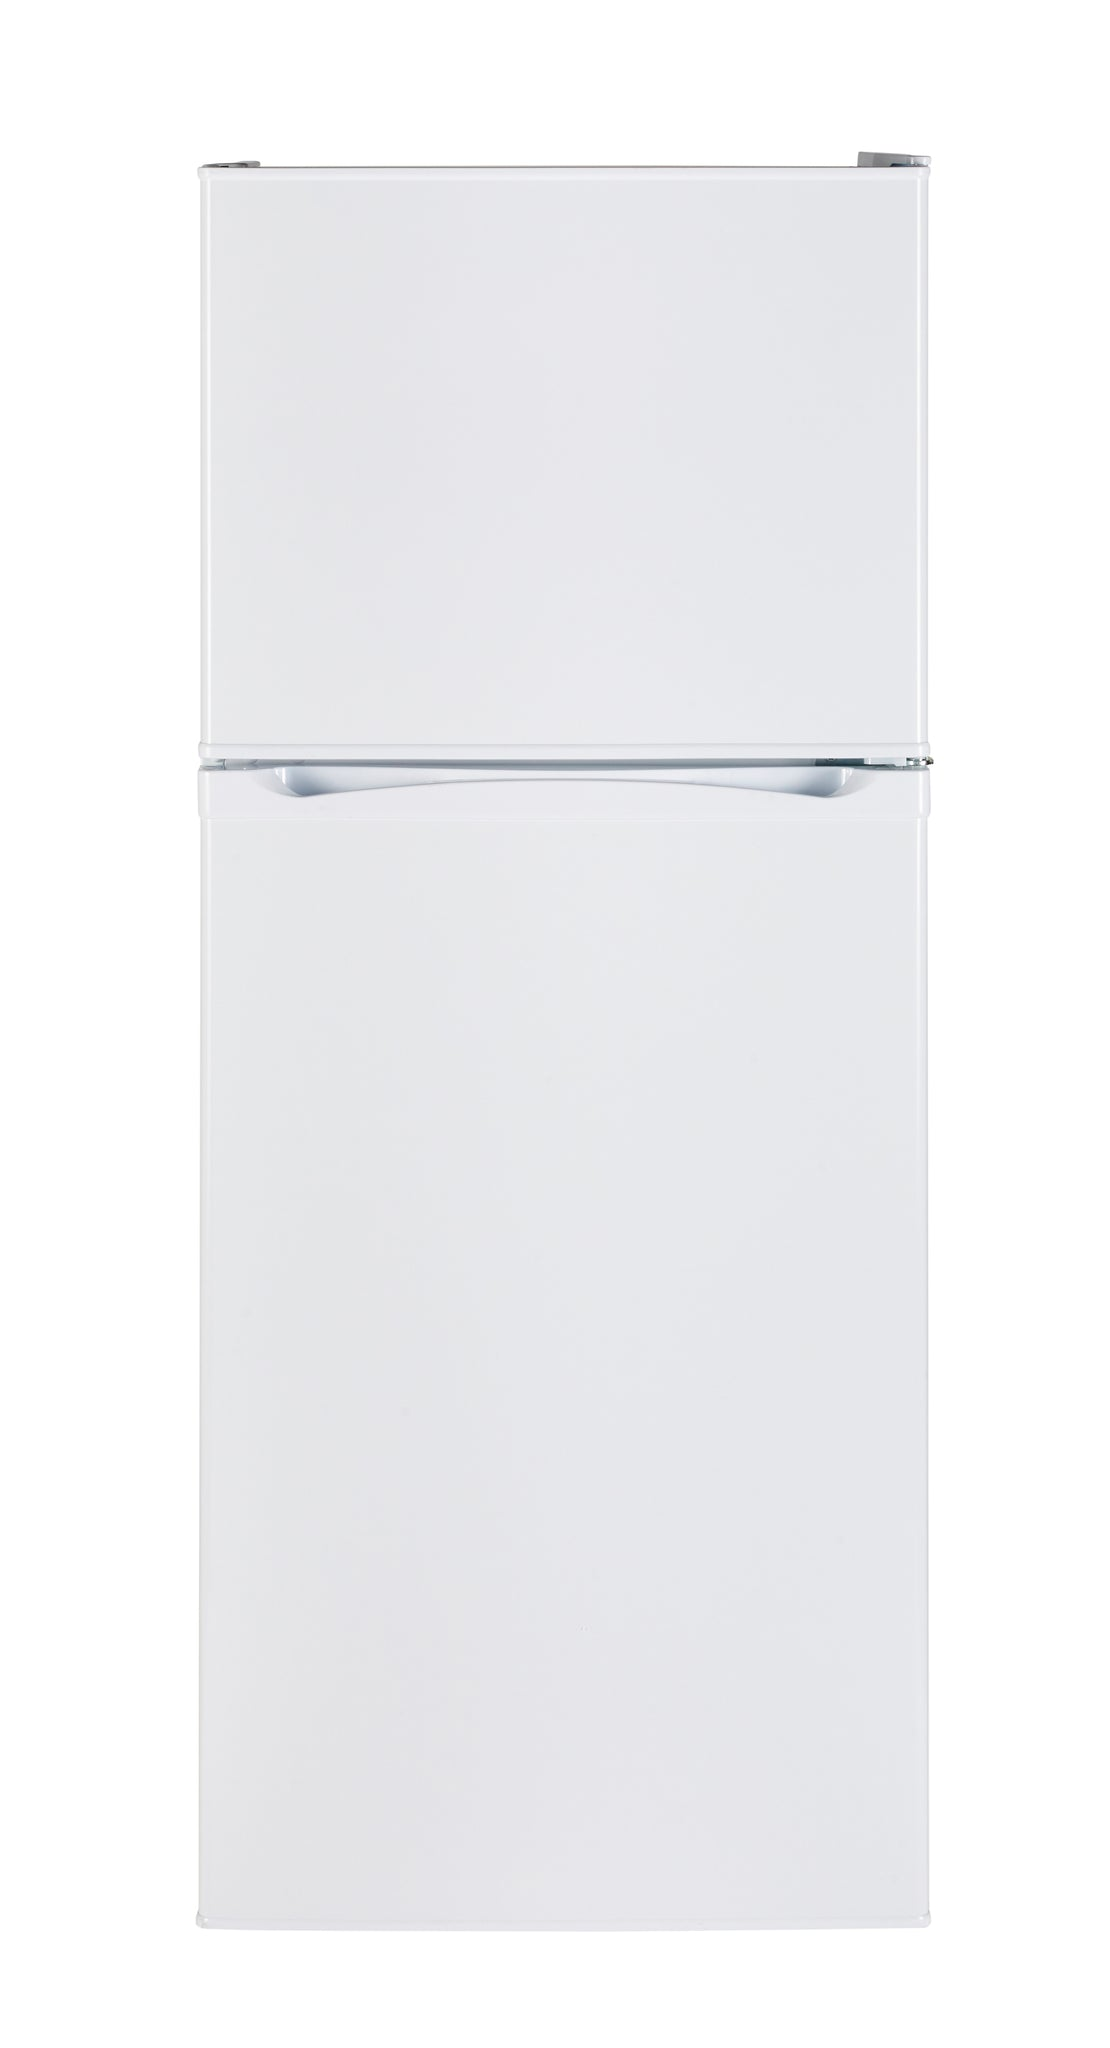 Moffat White 12 CU.FT Fridge